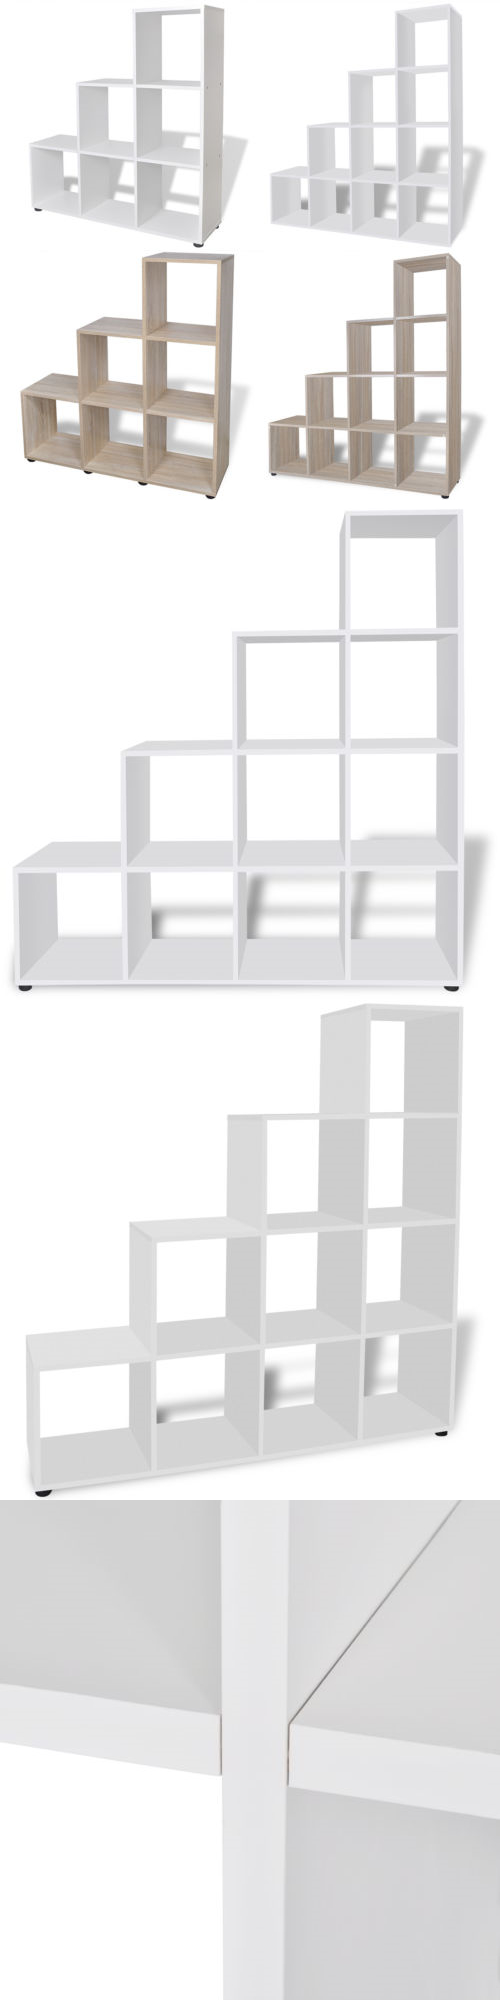 Bookcases vidaxl staircase shelf room divider bookcase display